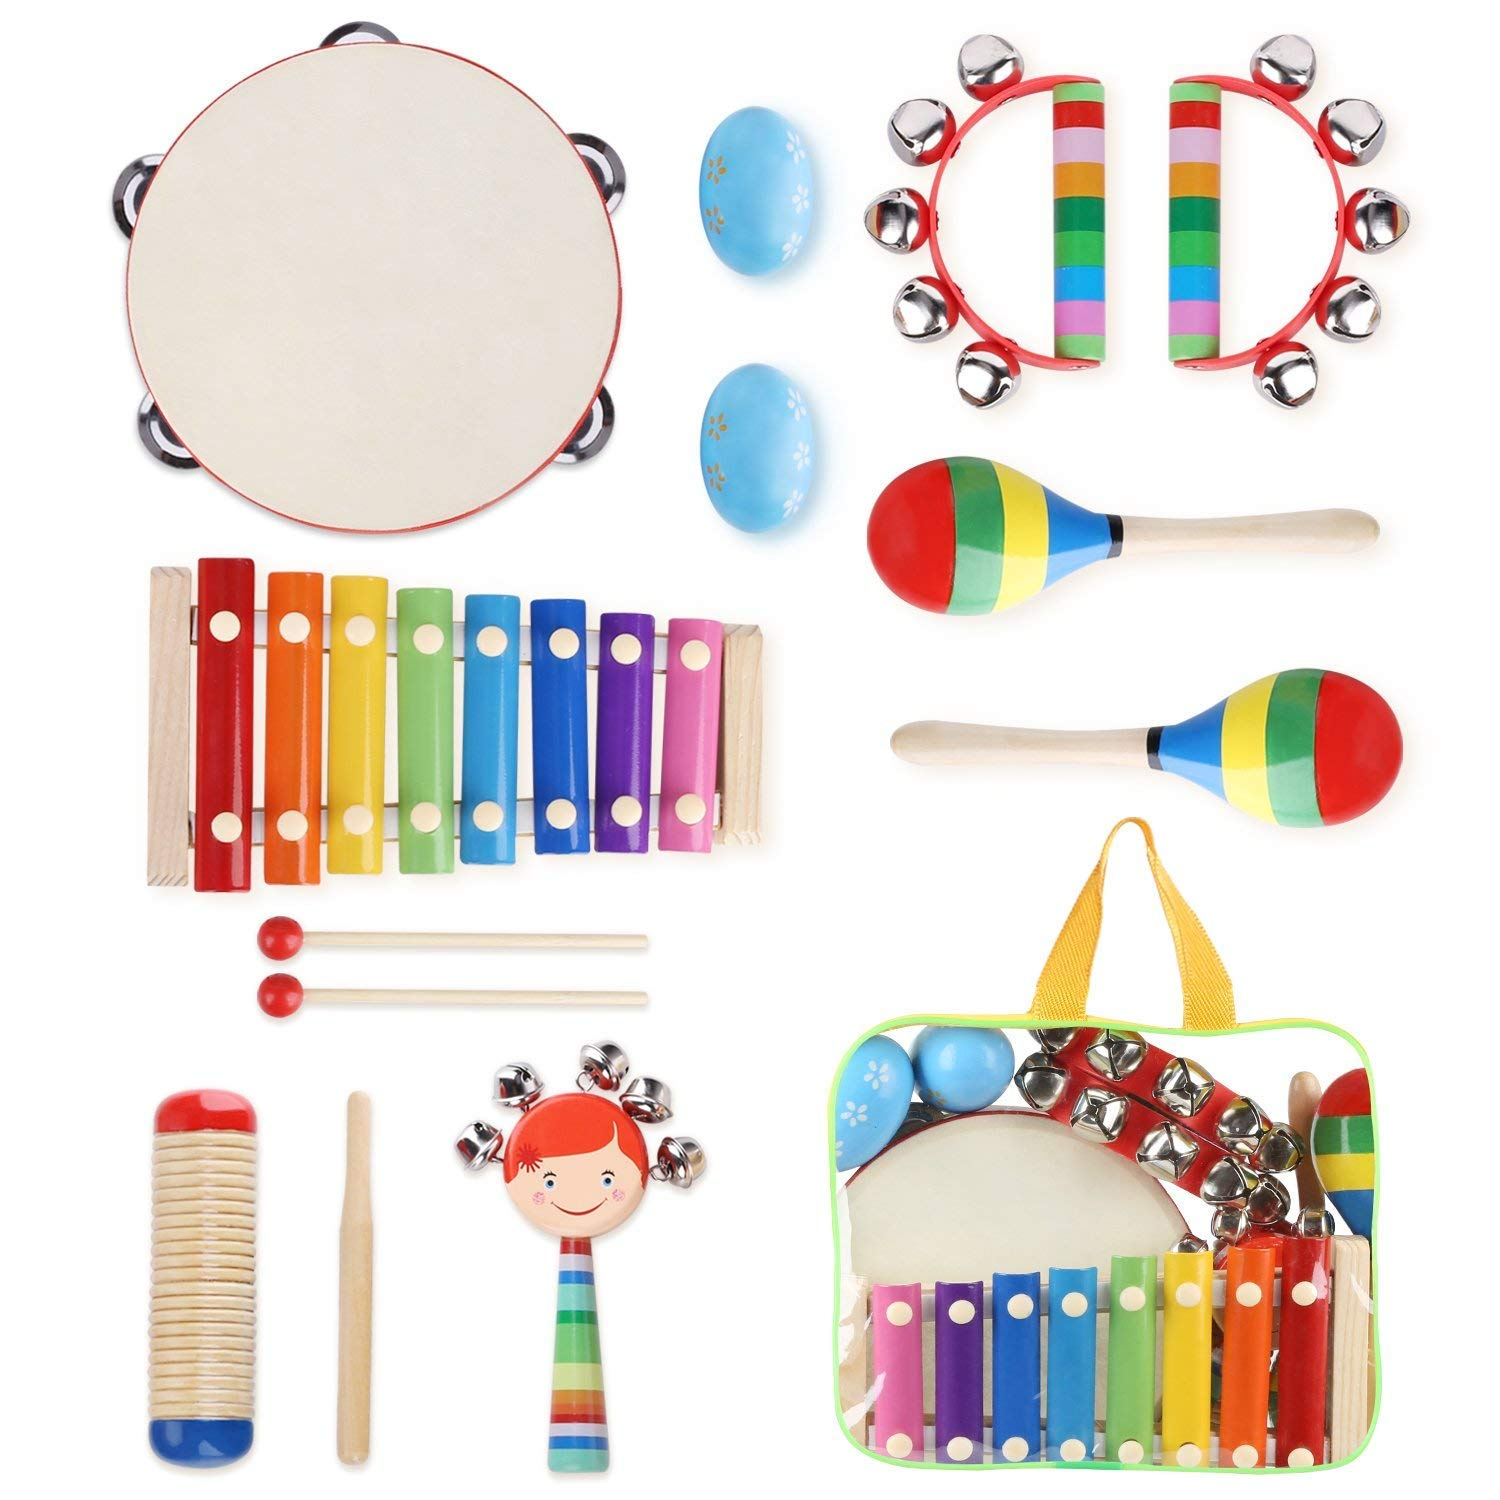 YISSVIC Kids Musical Instruments 12Pcs Toddler Musical Instruments Xylophone Tambourine Set Preschool Educational Toy with Carrying Bag by YISSVIC